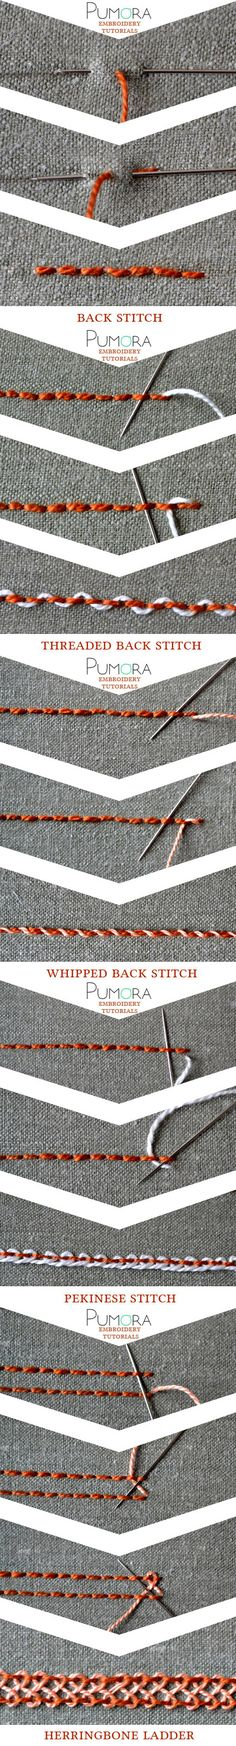 embroidery tutorials: backstitch pimorawith variations bordado, ricamo, broderie, sticken